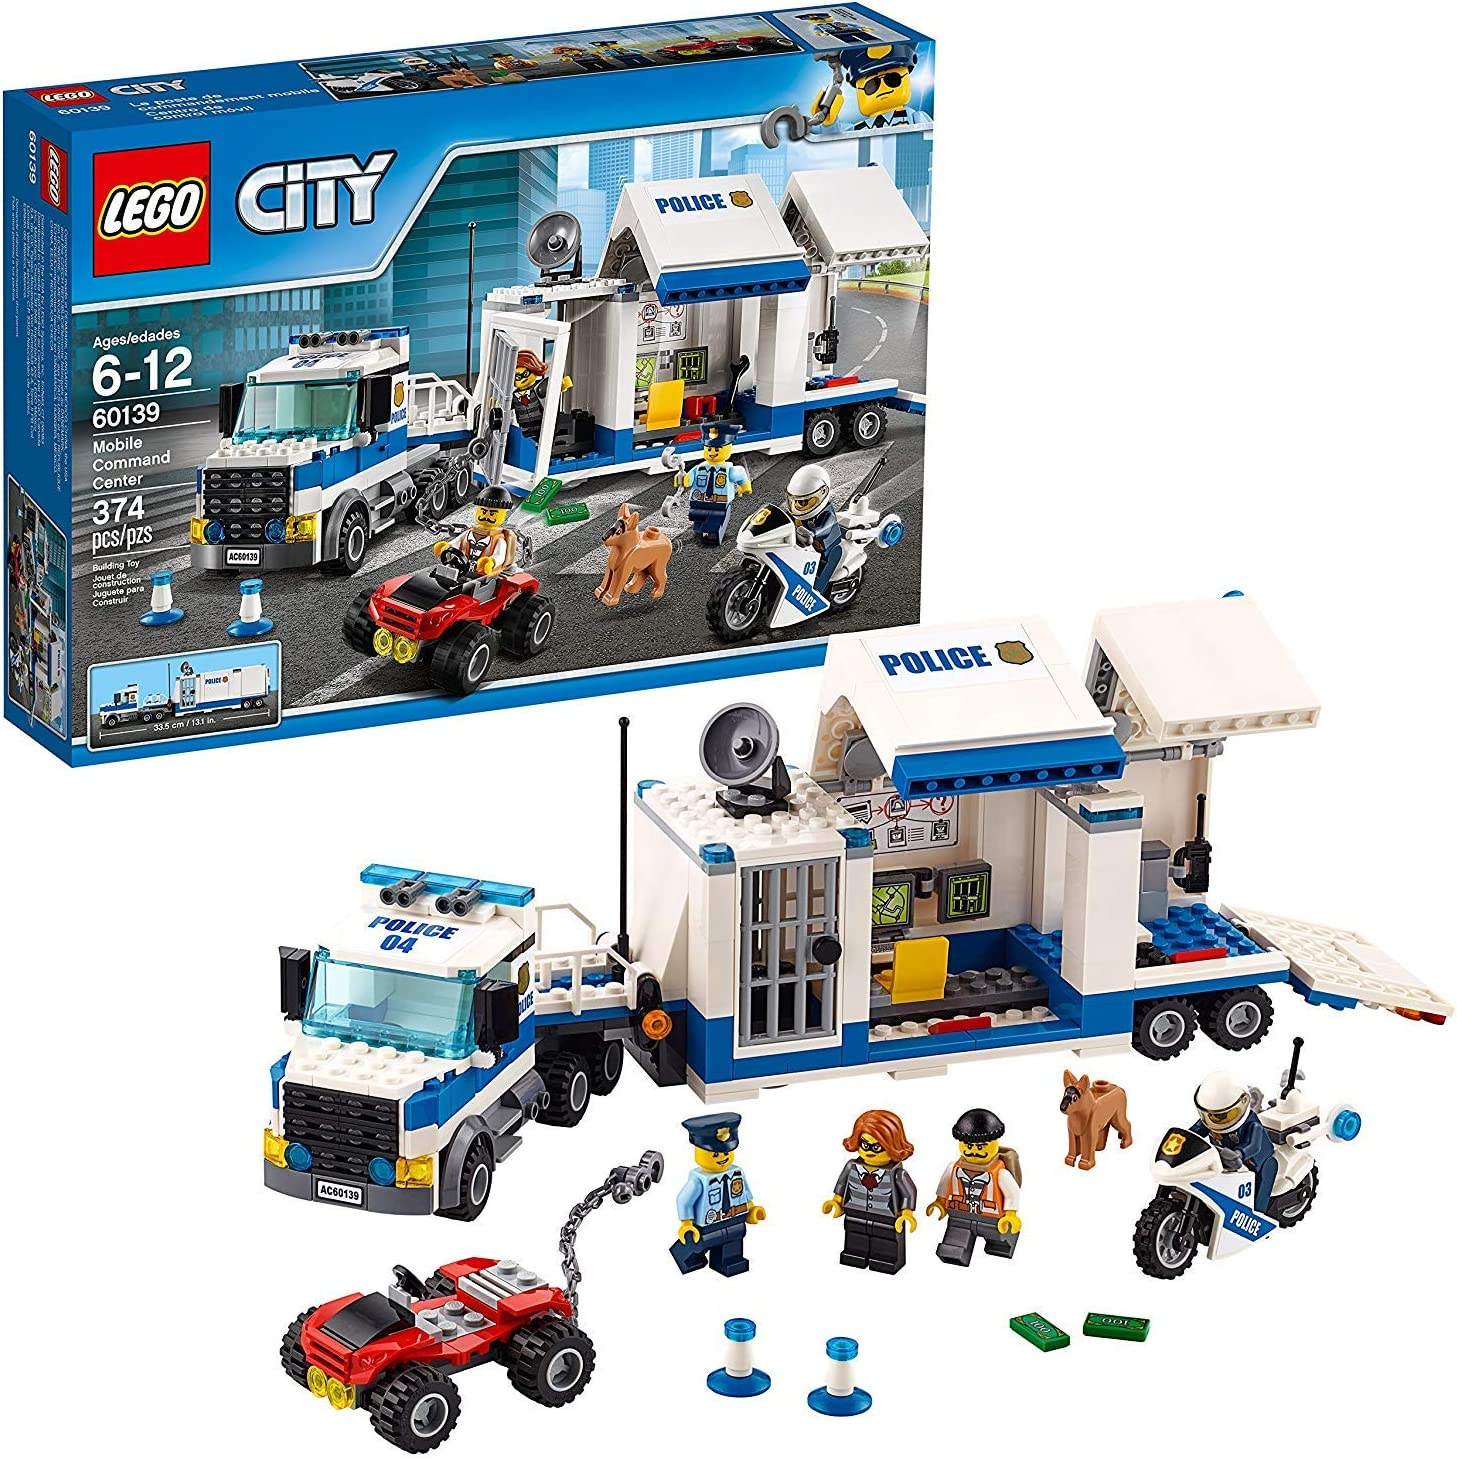 City Police Mobile Command Center 60139 Building Toy